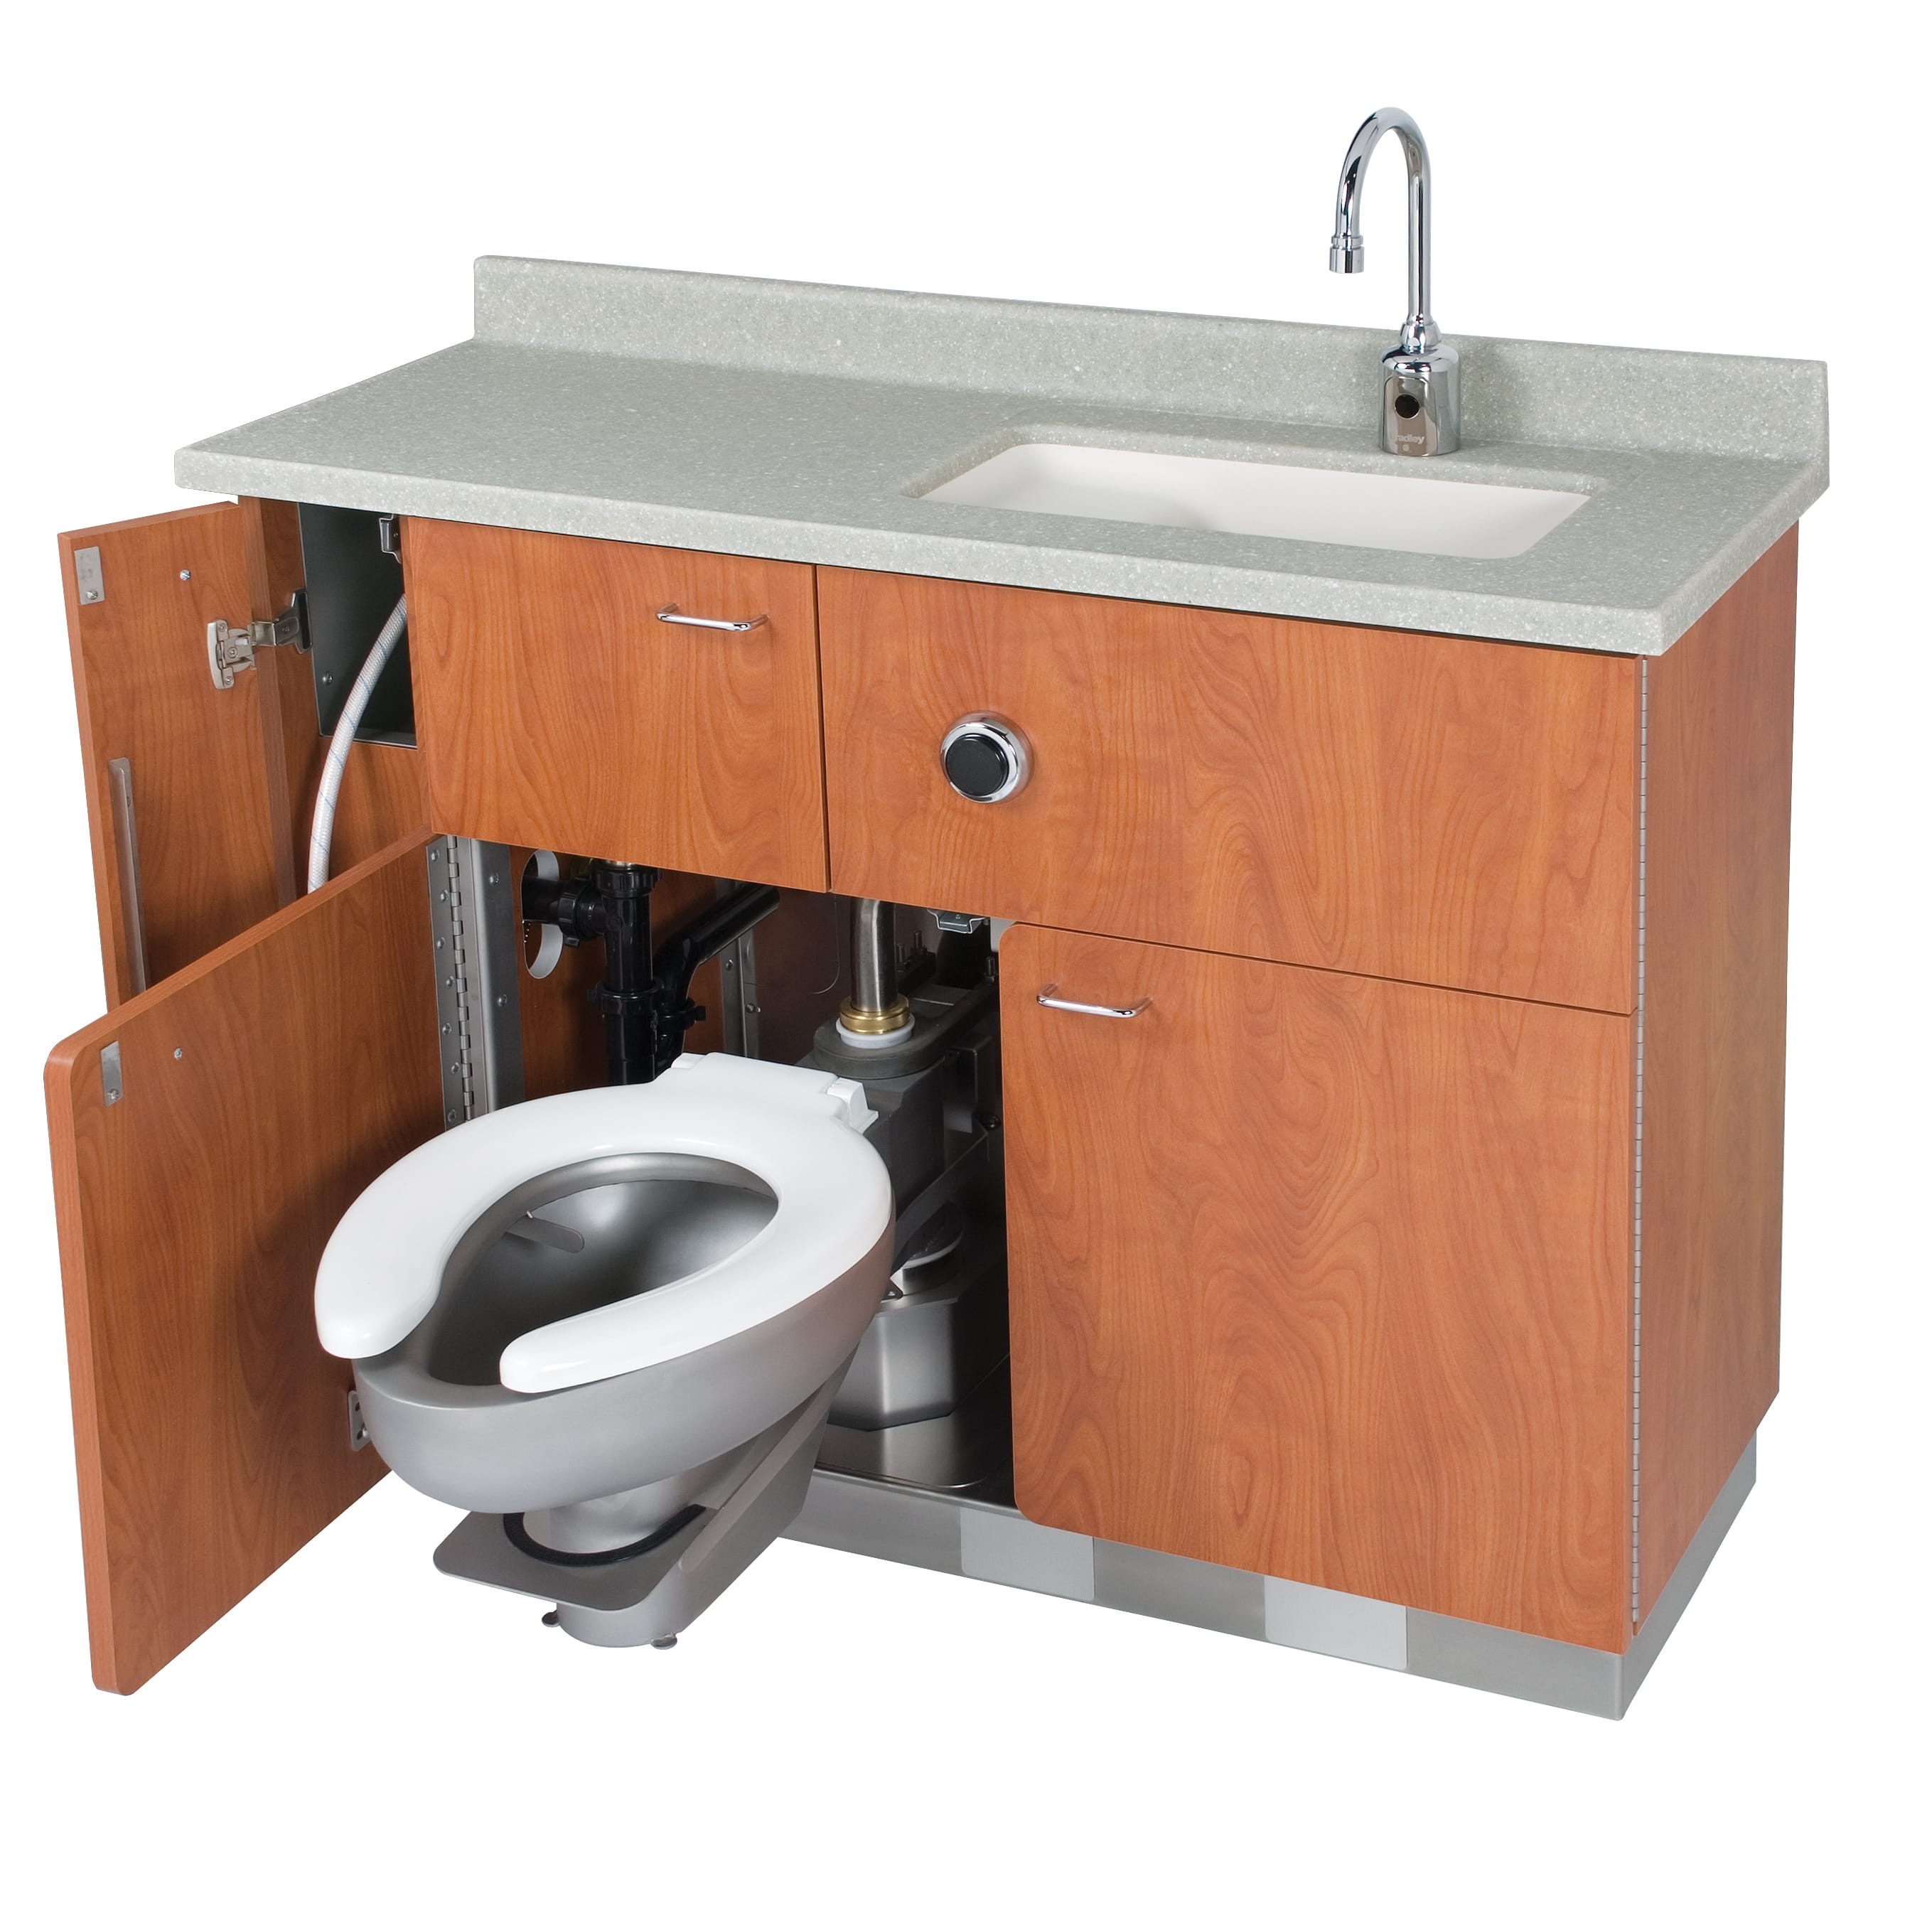 Lavatory swing out water closet bed pan washer comby for Toilet and sink combo